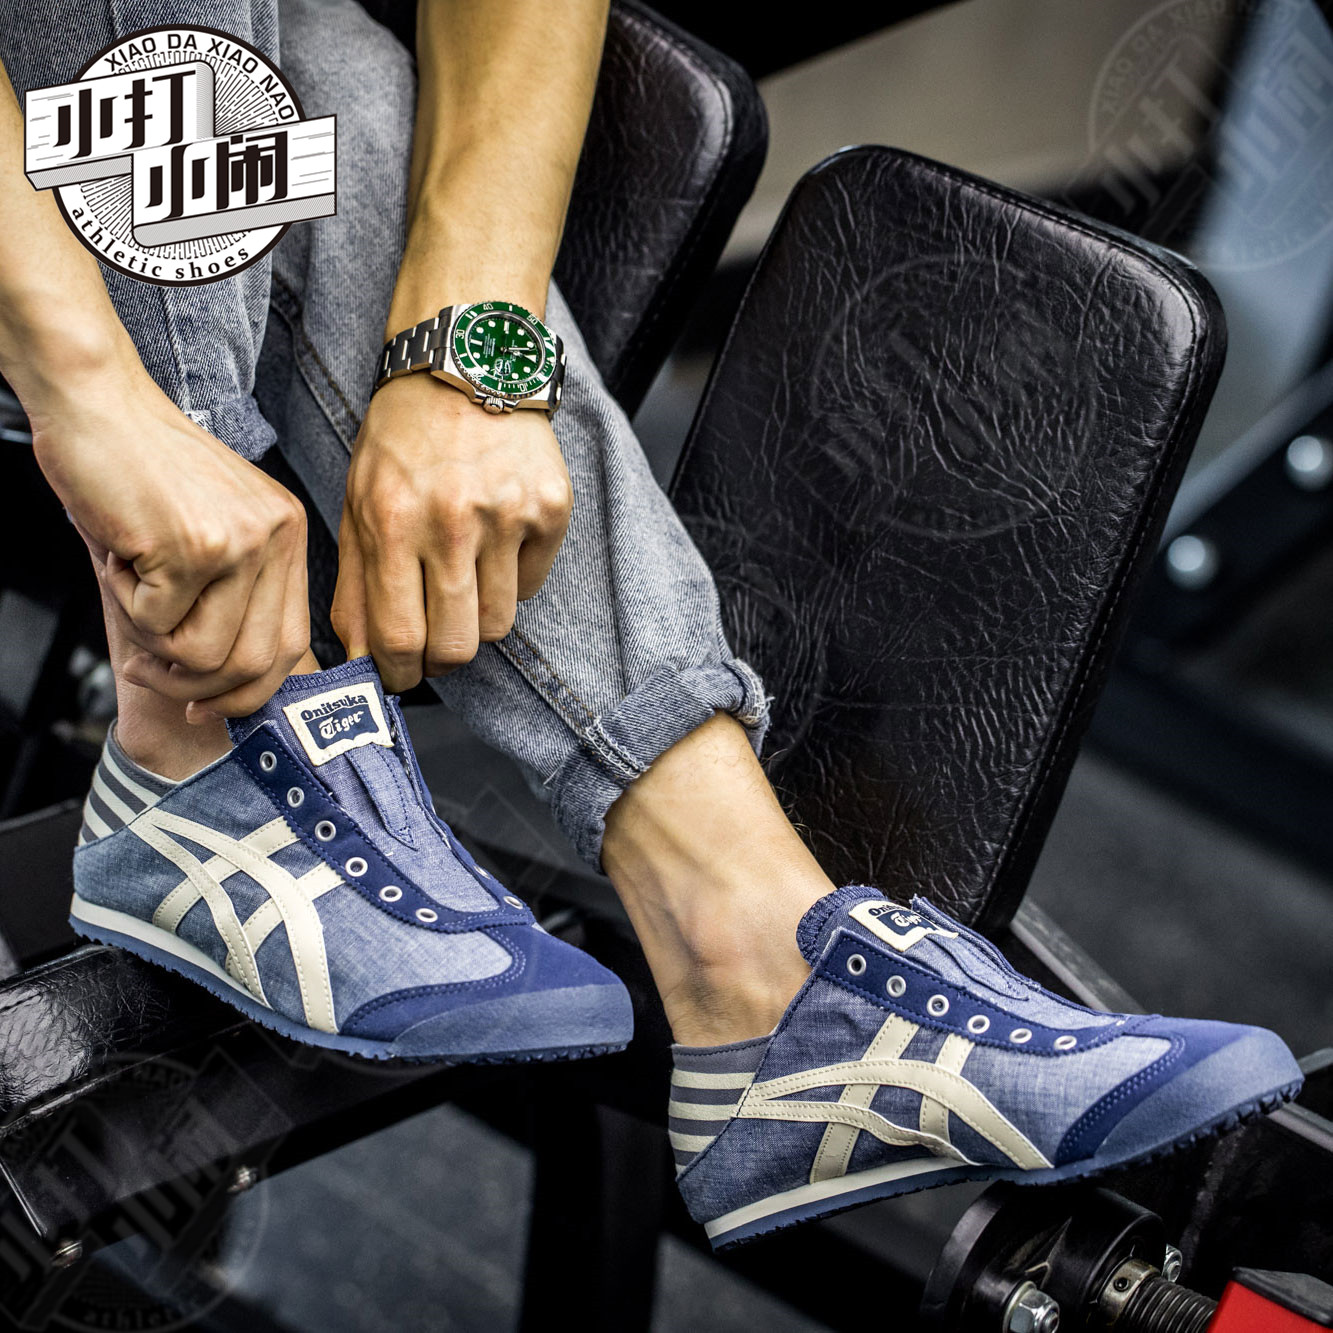 new arrivals 92e54 ecabe Ghost tiger casual shoes for men and women couple onitsuka ...